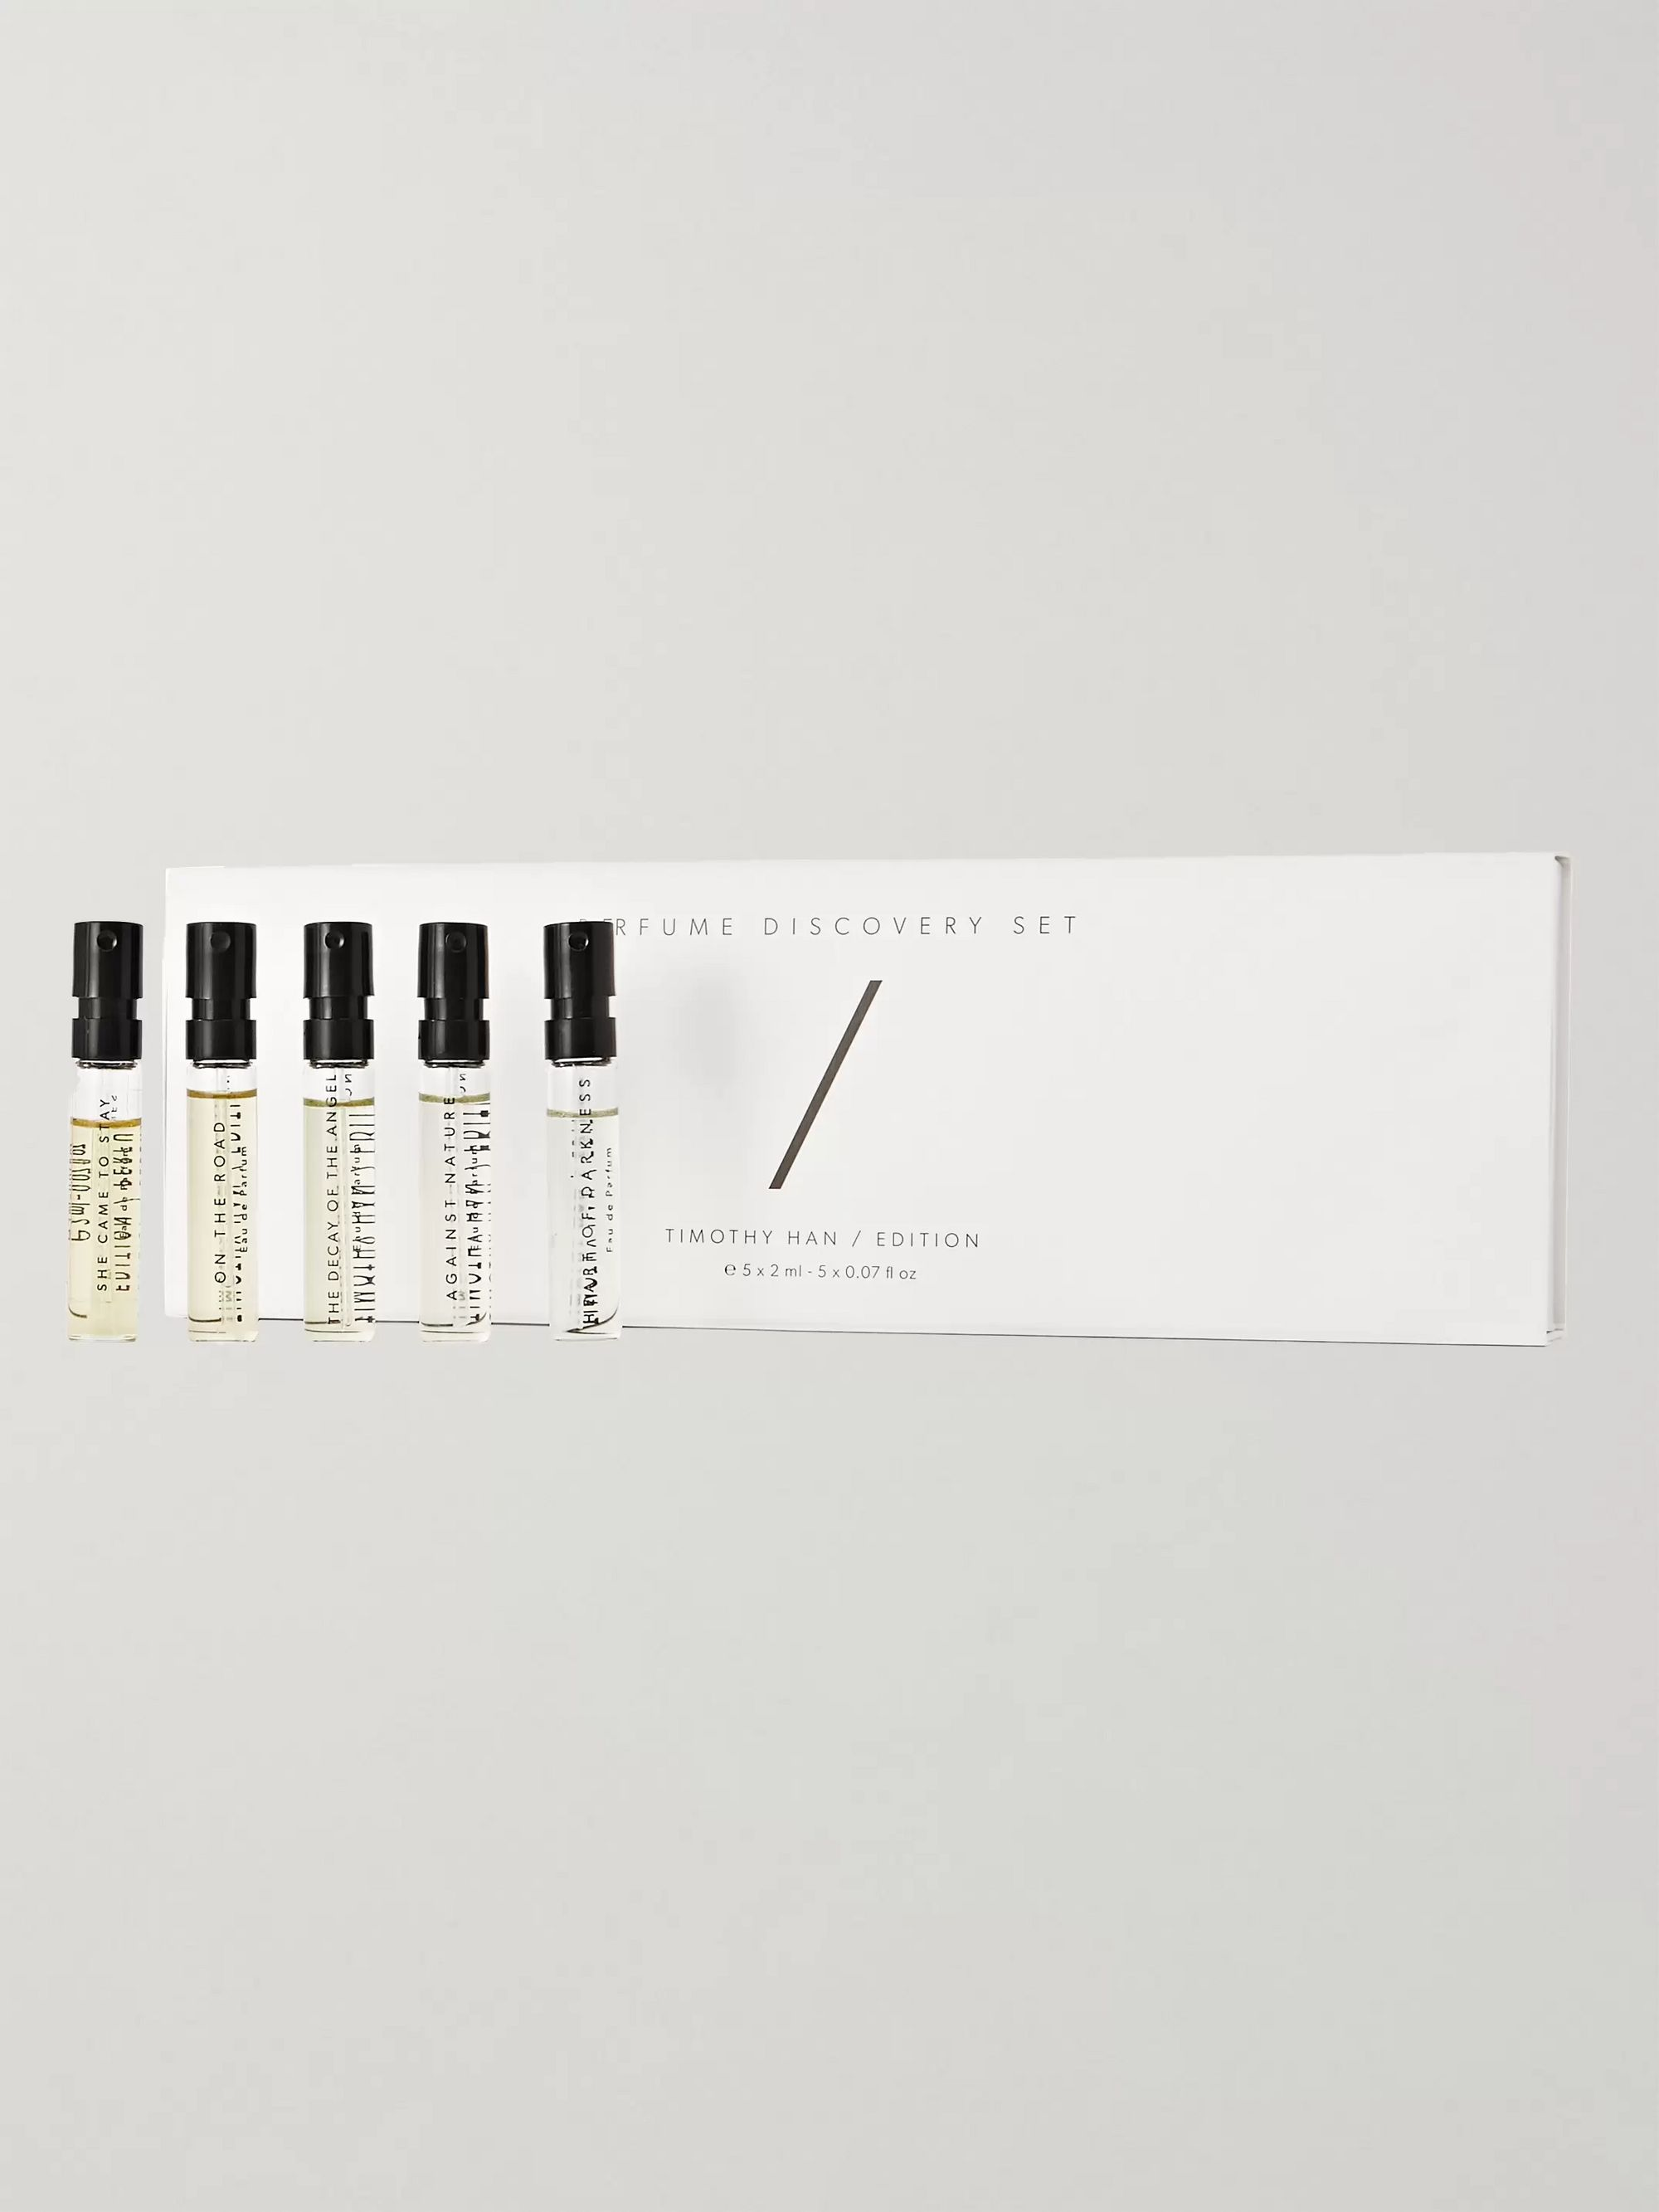 TIMOTHY HAN / EDITION Perfume Discovery Set, 5 x 2ml